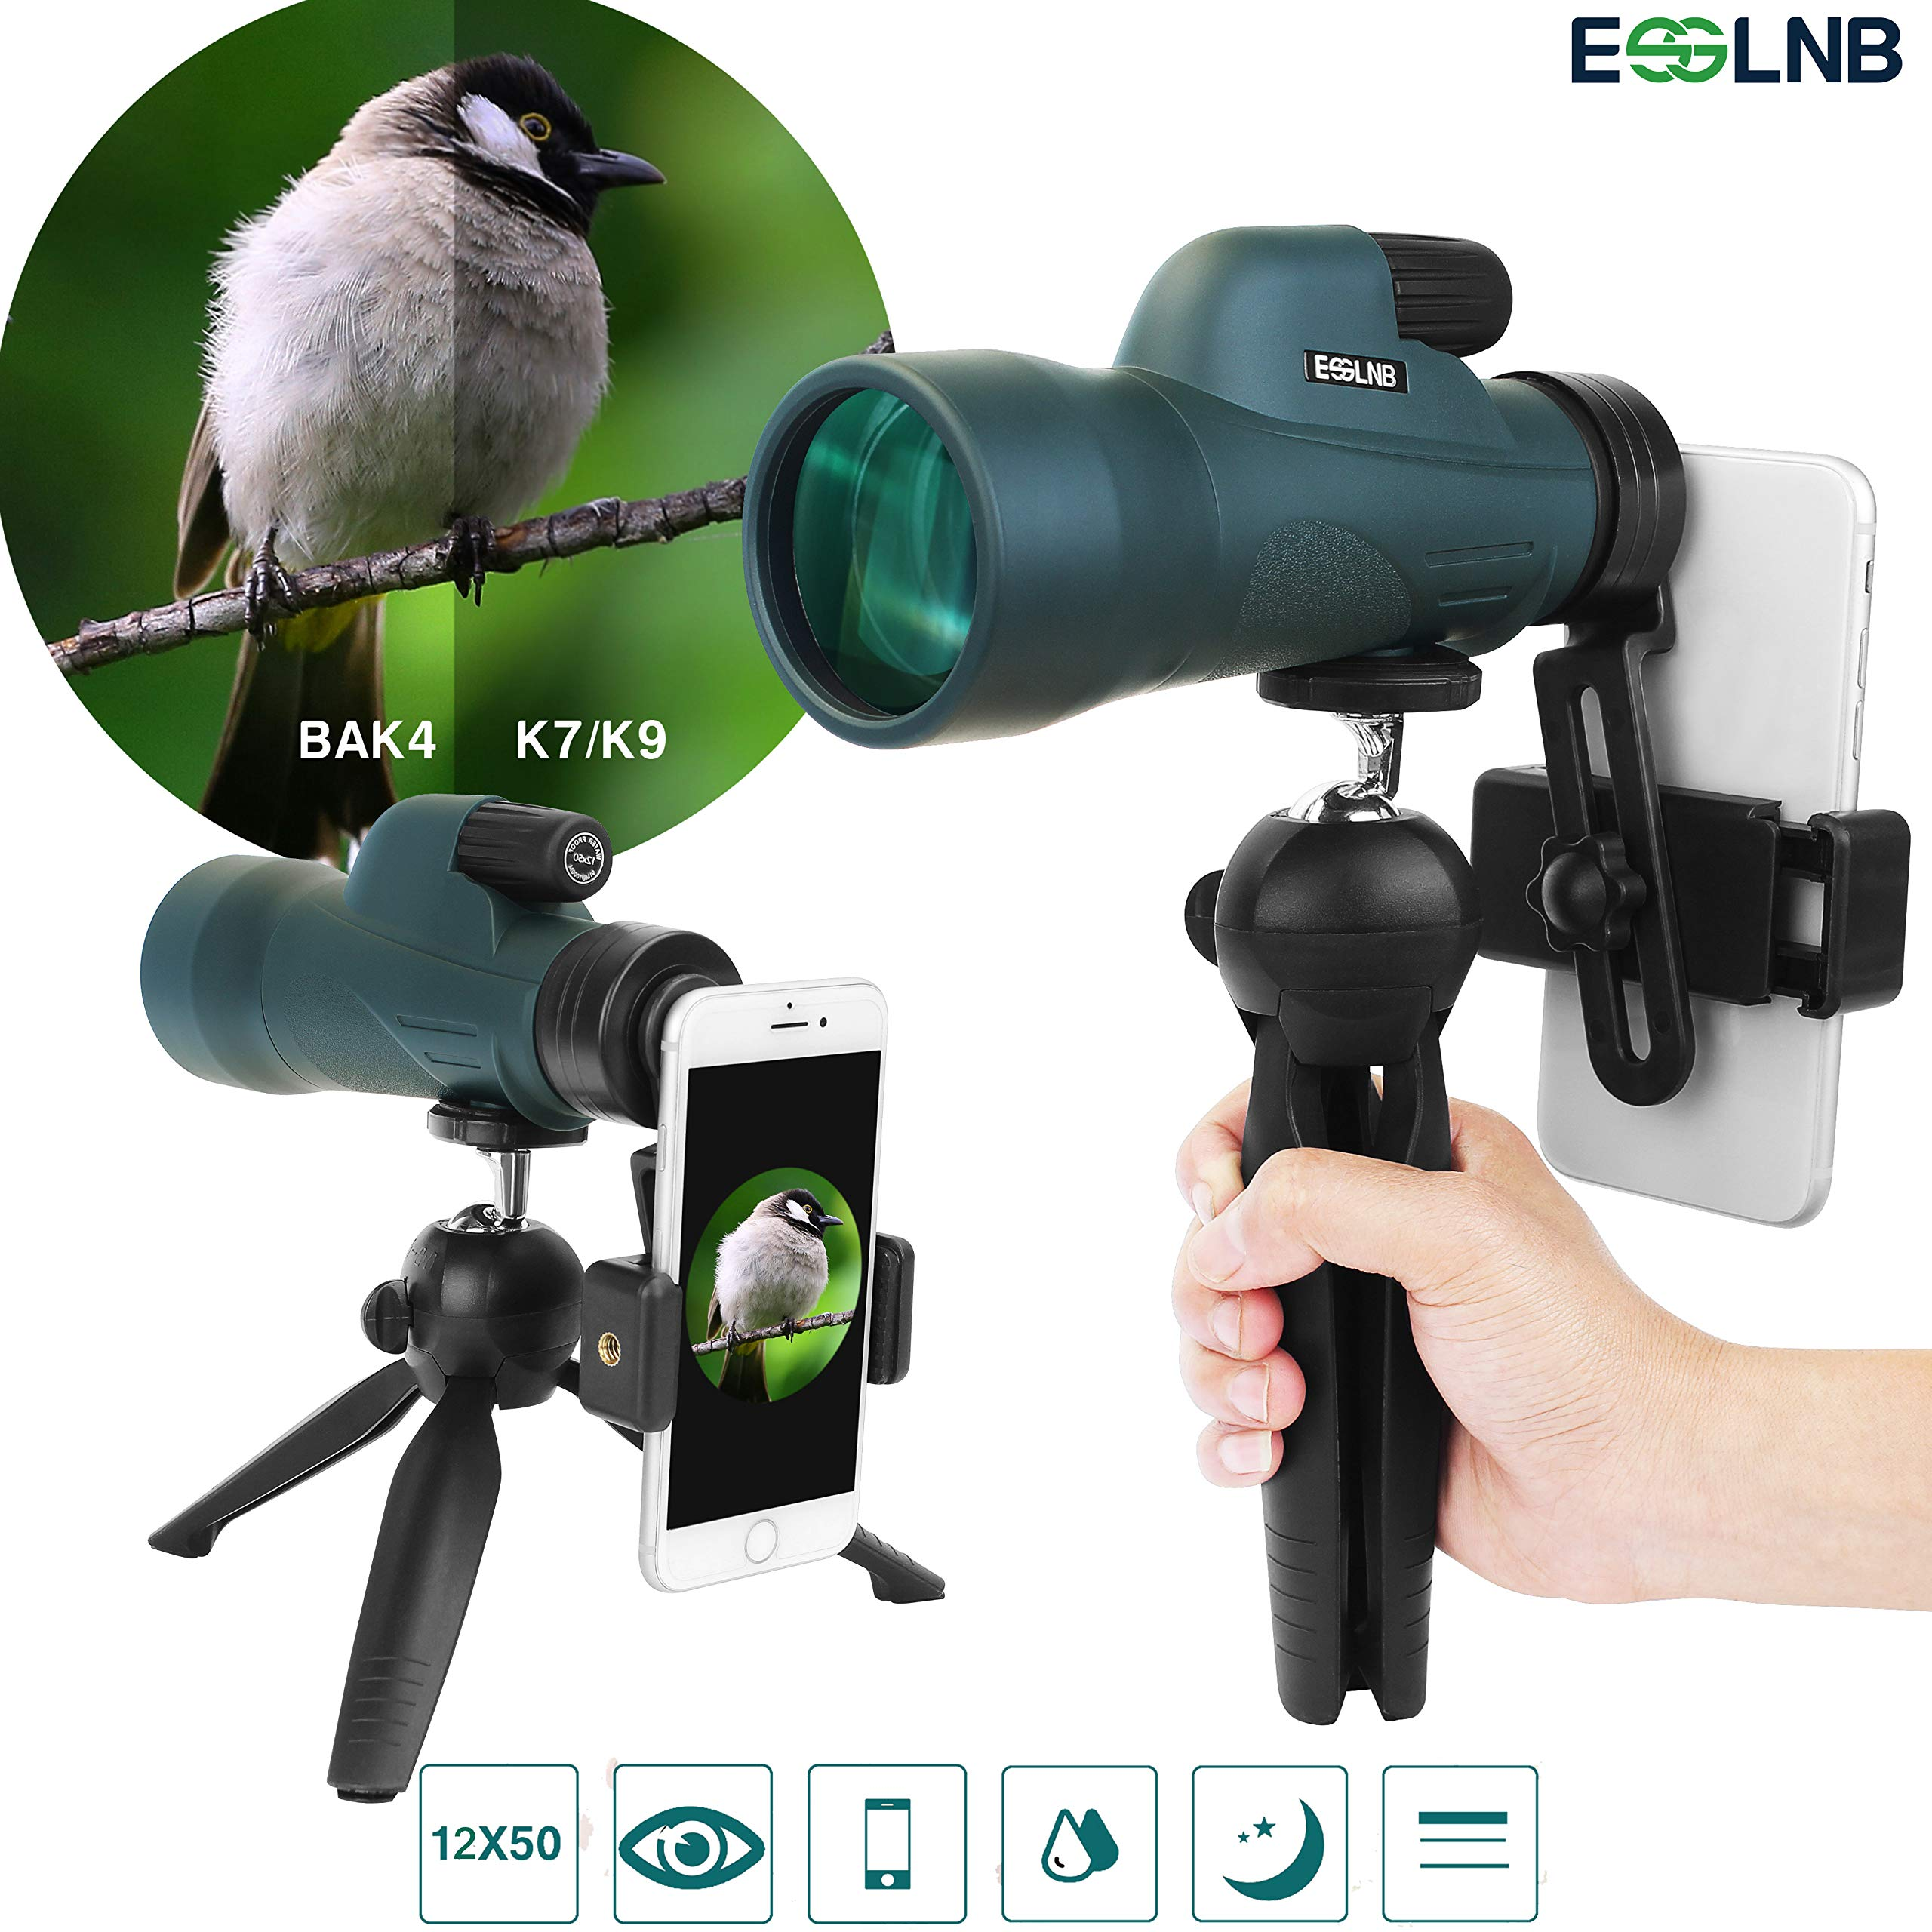 ESSLNB Monocular Telescope 12X50 with Smartphone Adapter and Extendable Tripod IPX7 Waterproof BAK4 Prism Green FMC for Bird Watching Hunting Camping by ESSLNB